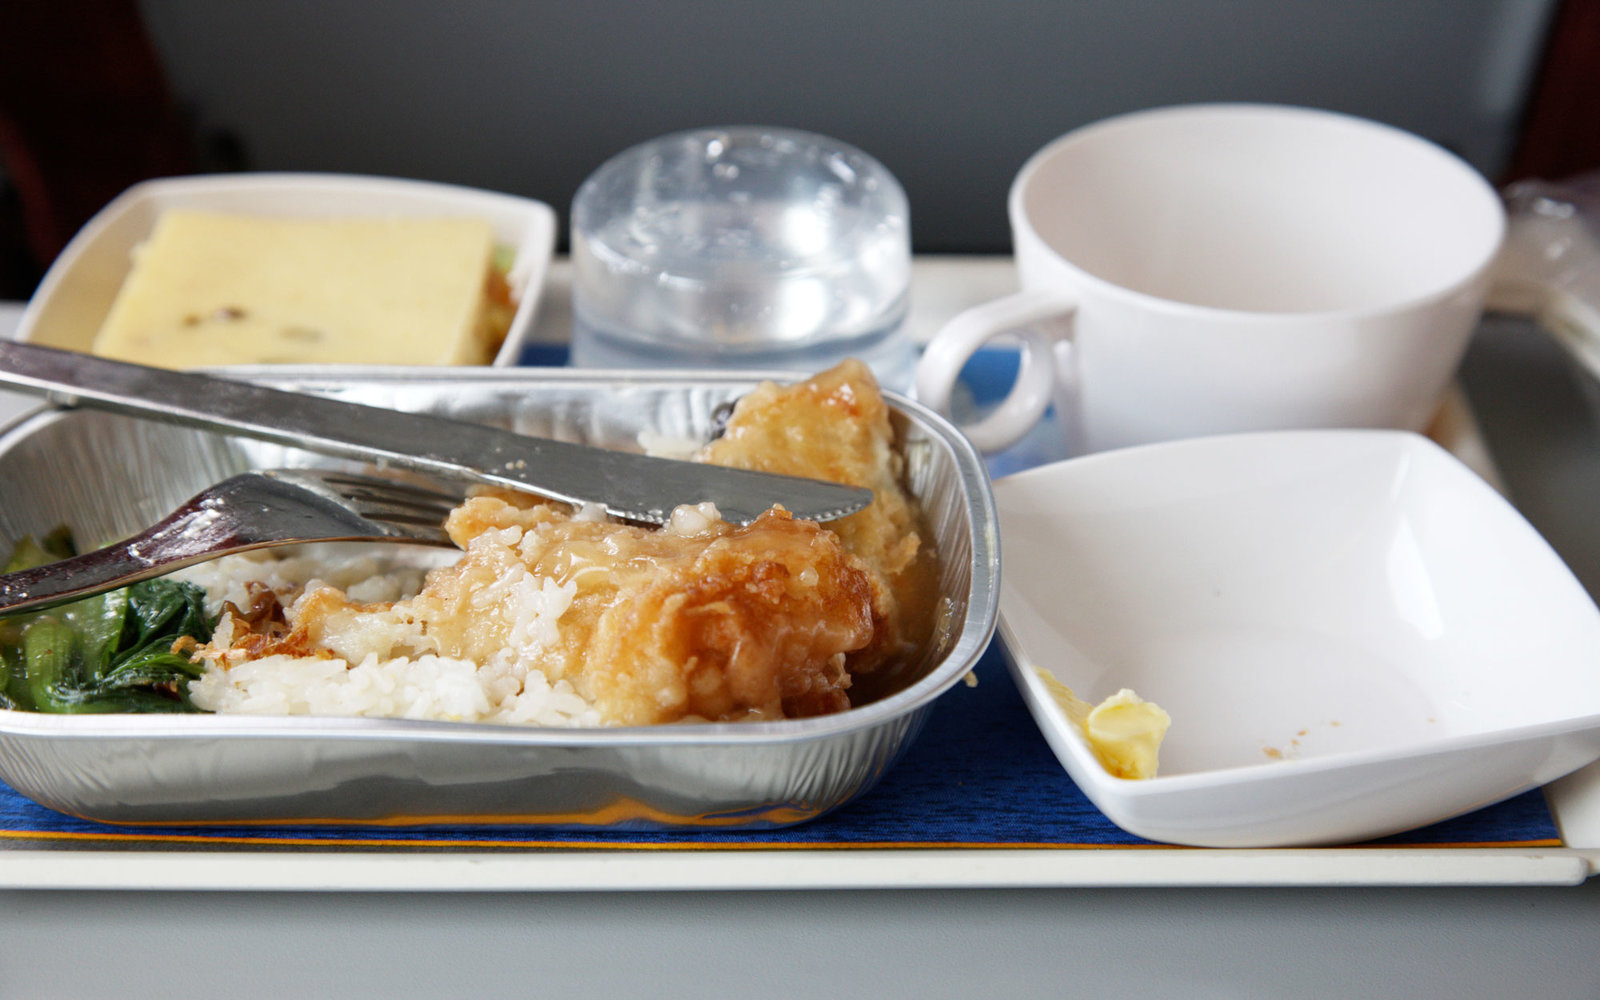 A Brilliant New Use For Leftover Airplane Food